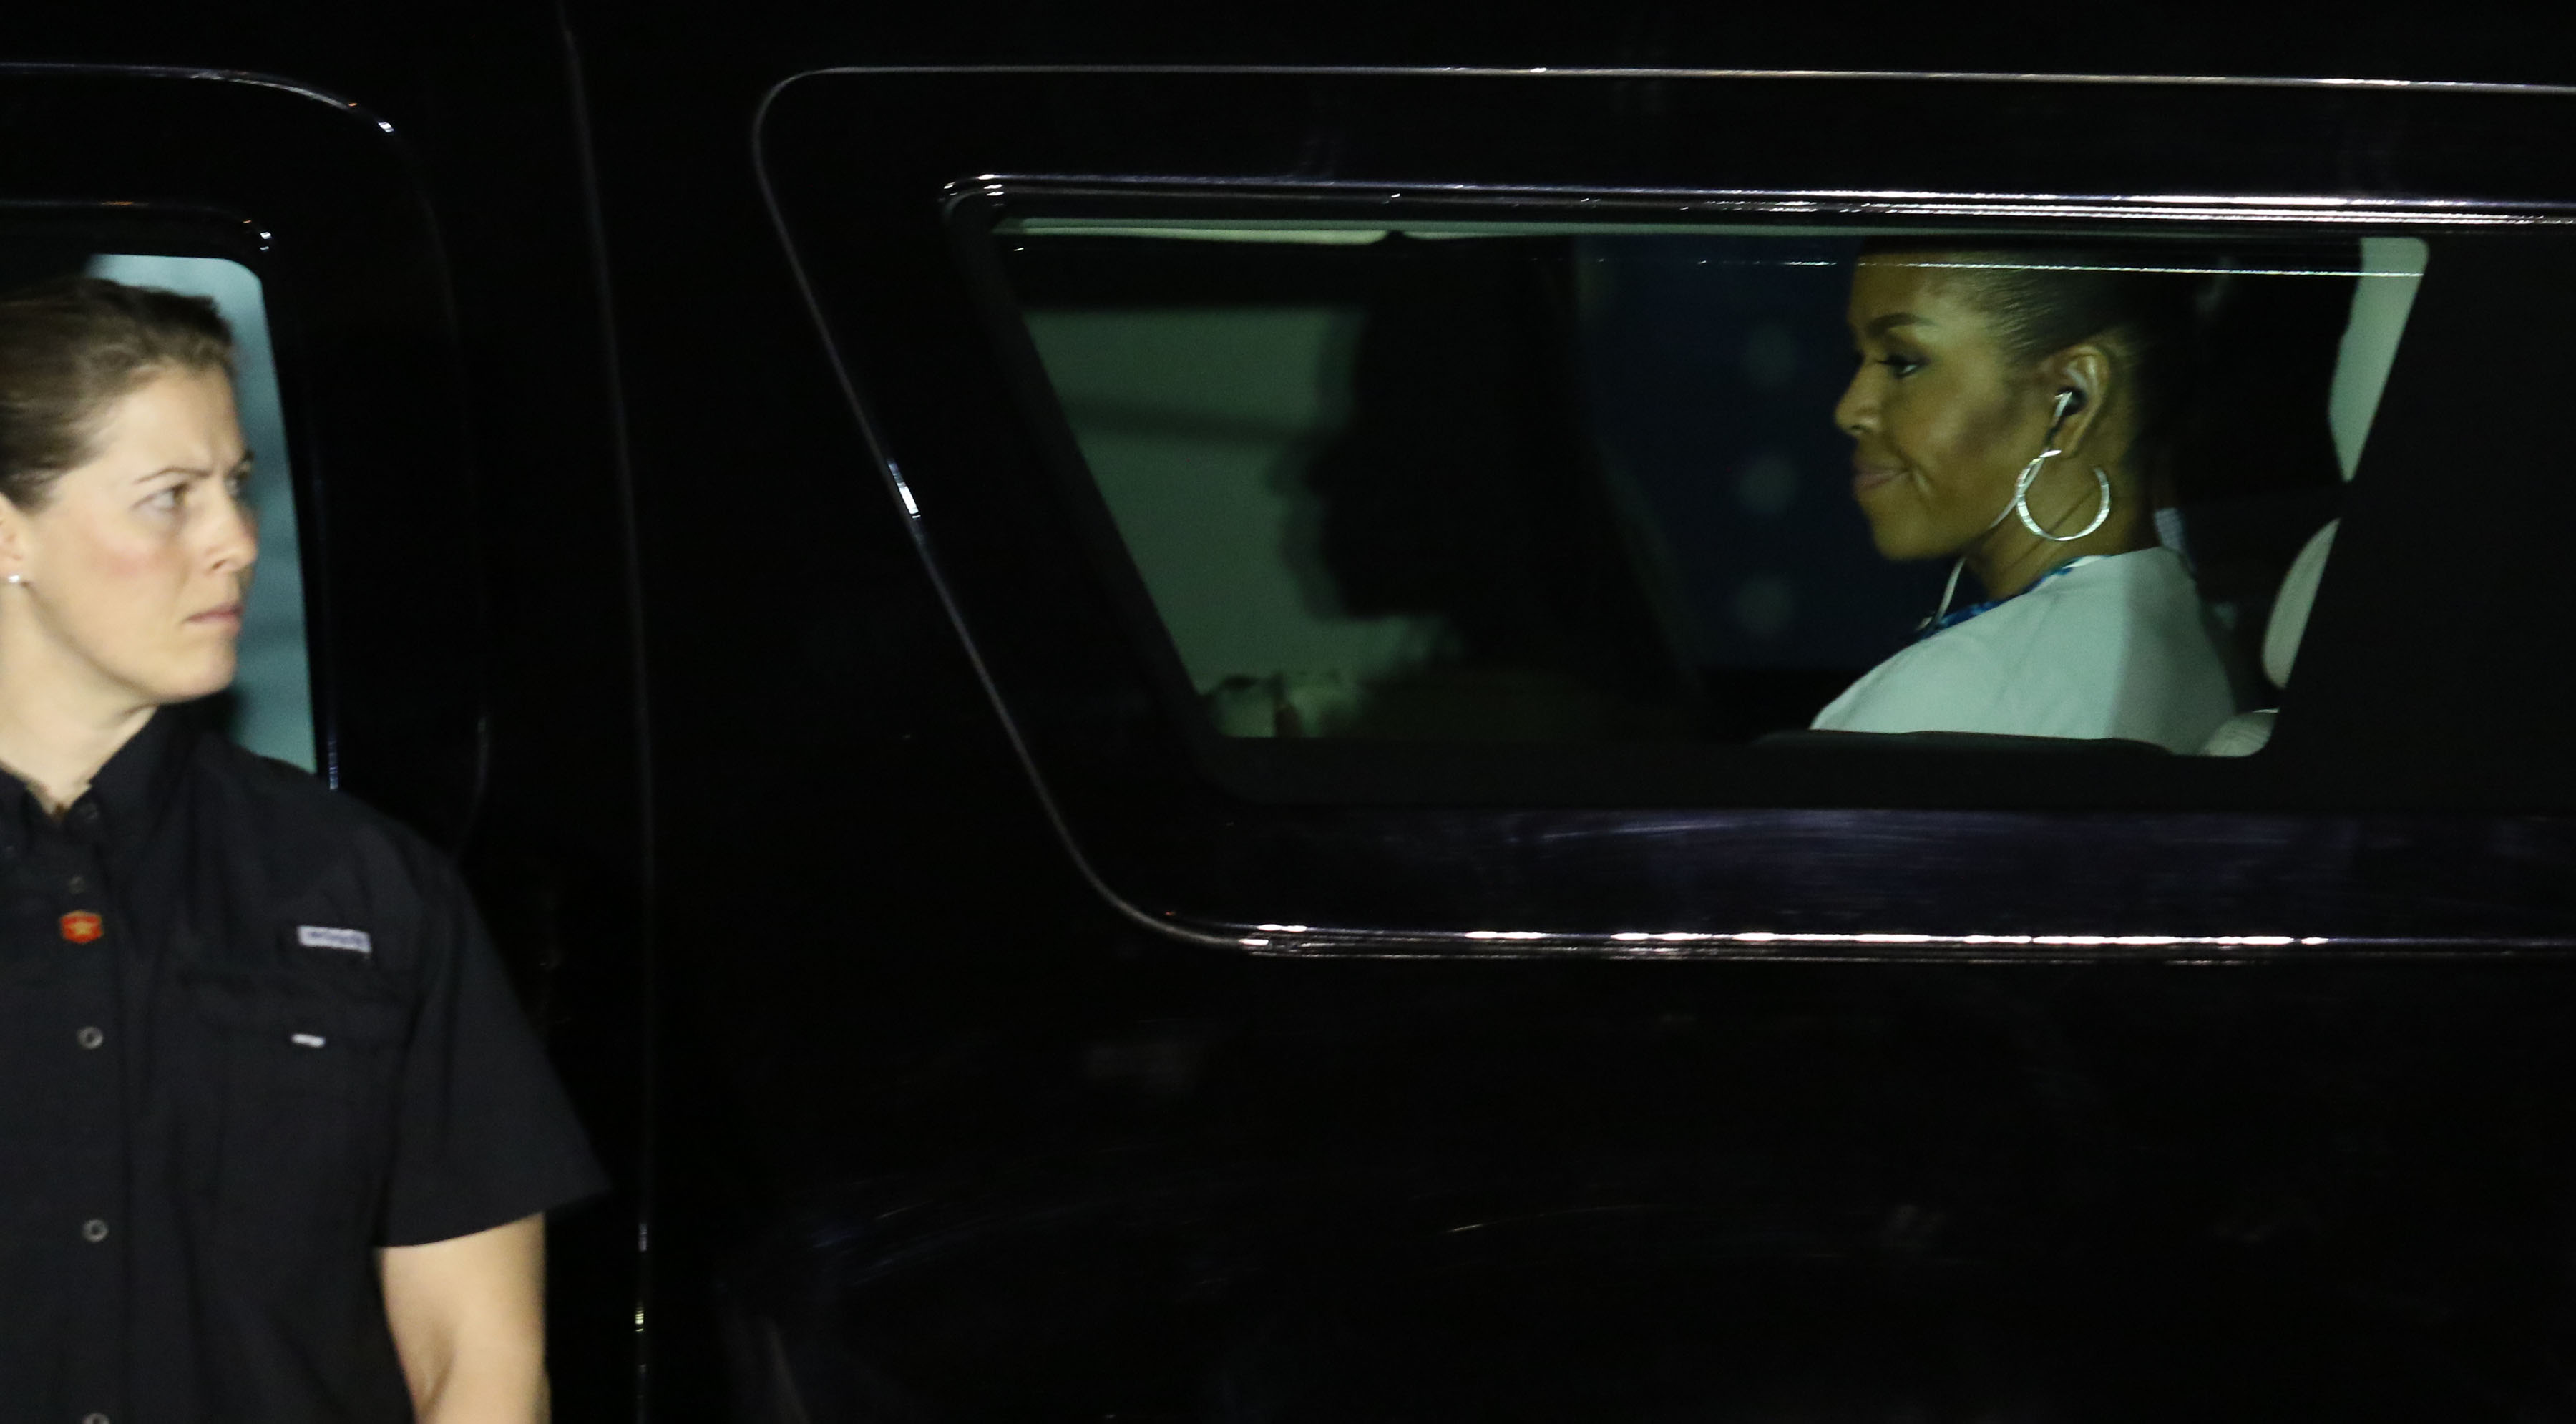 First Lady Michelle Obama sits in an SUV with President Obama after disembarking from Air Force One. It was about 4 a.m. her time.